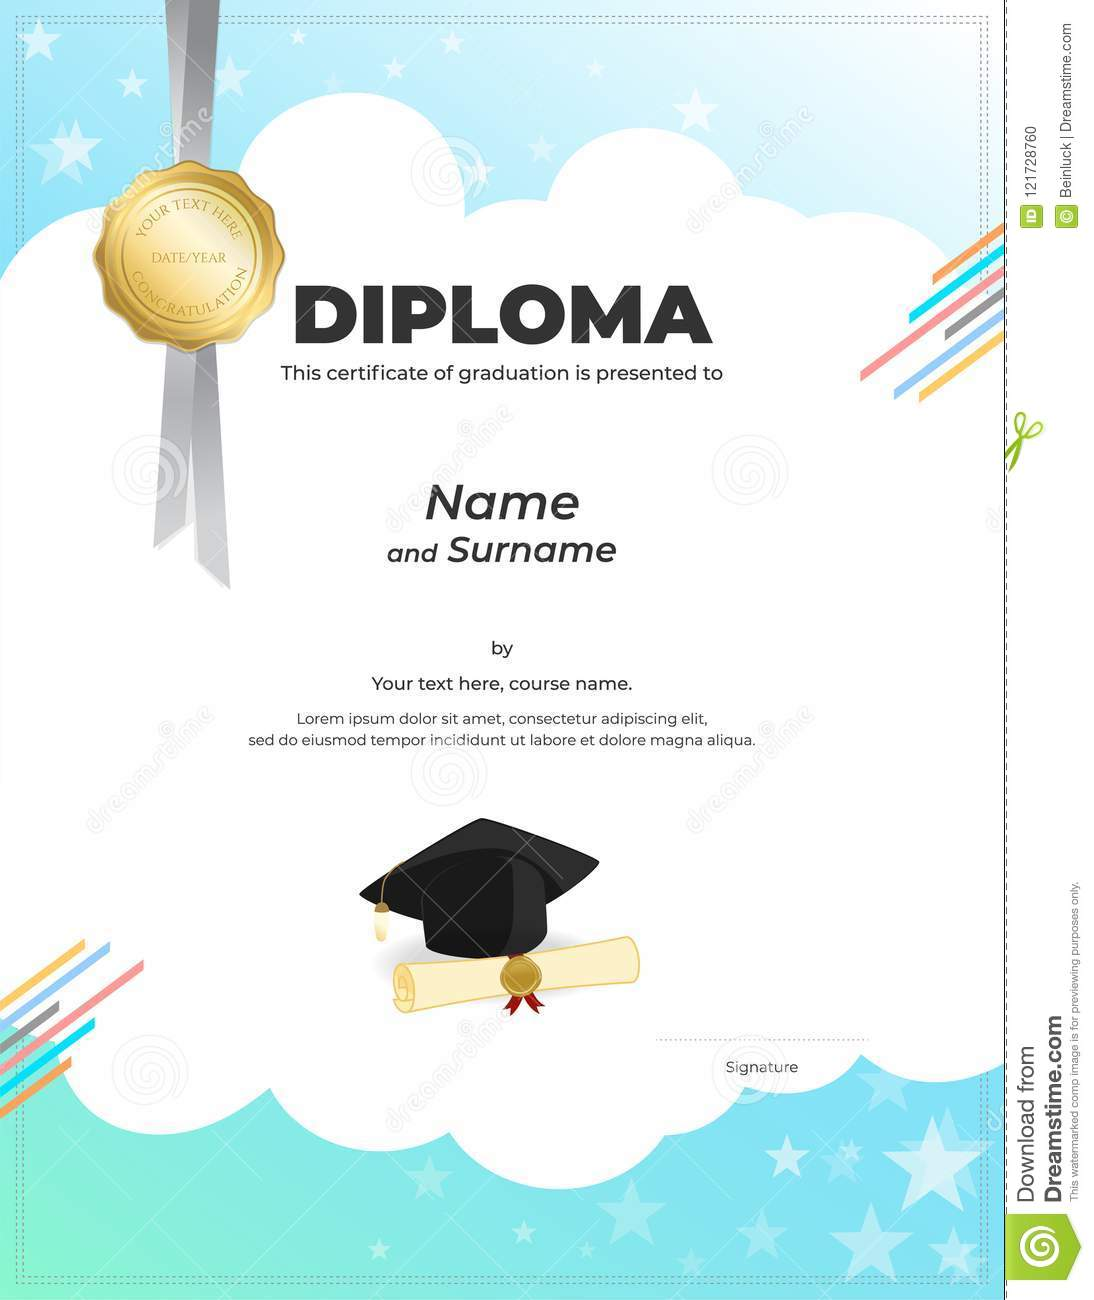 Graduation Diploma Template from thumbs.dreamstime.com